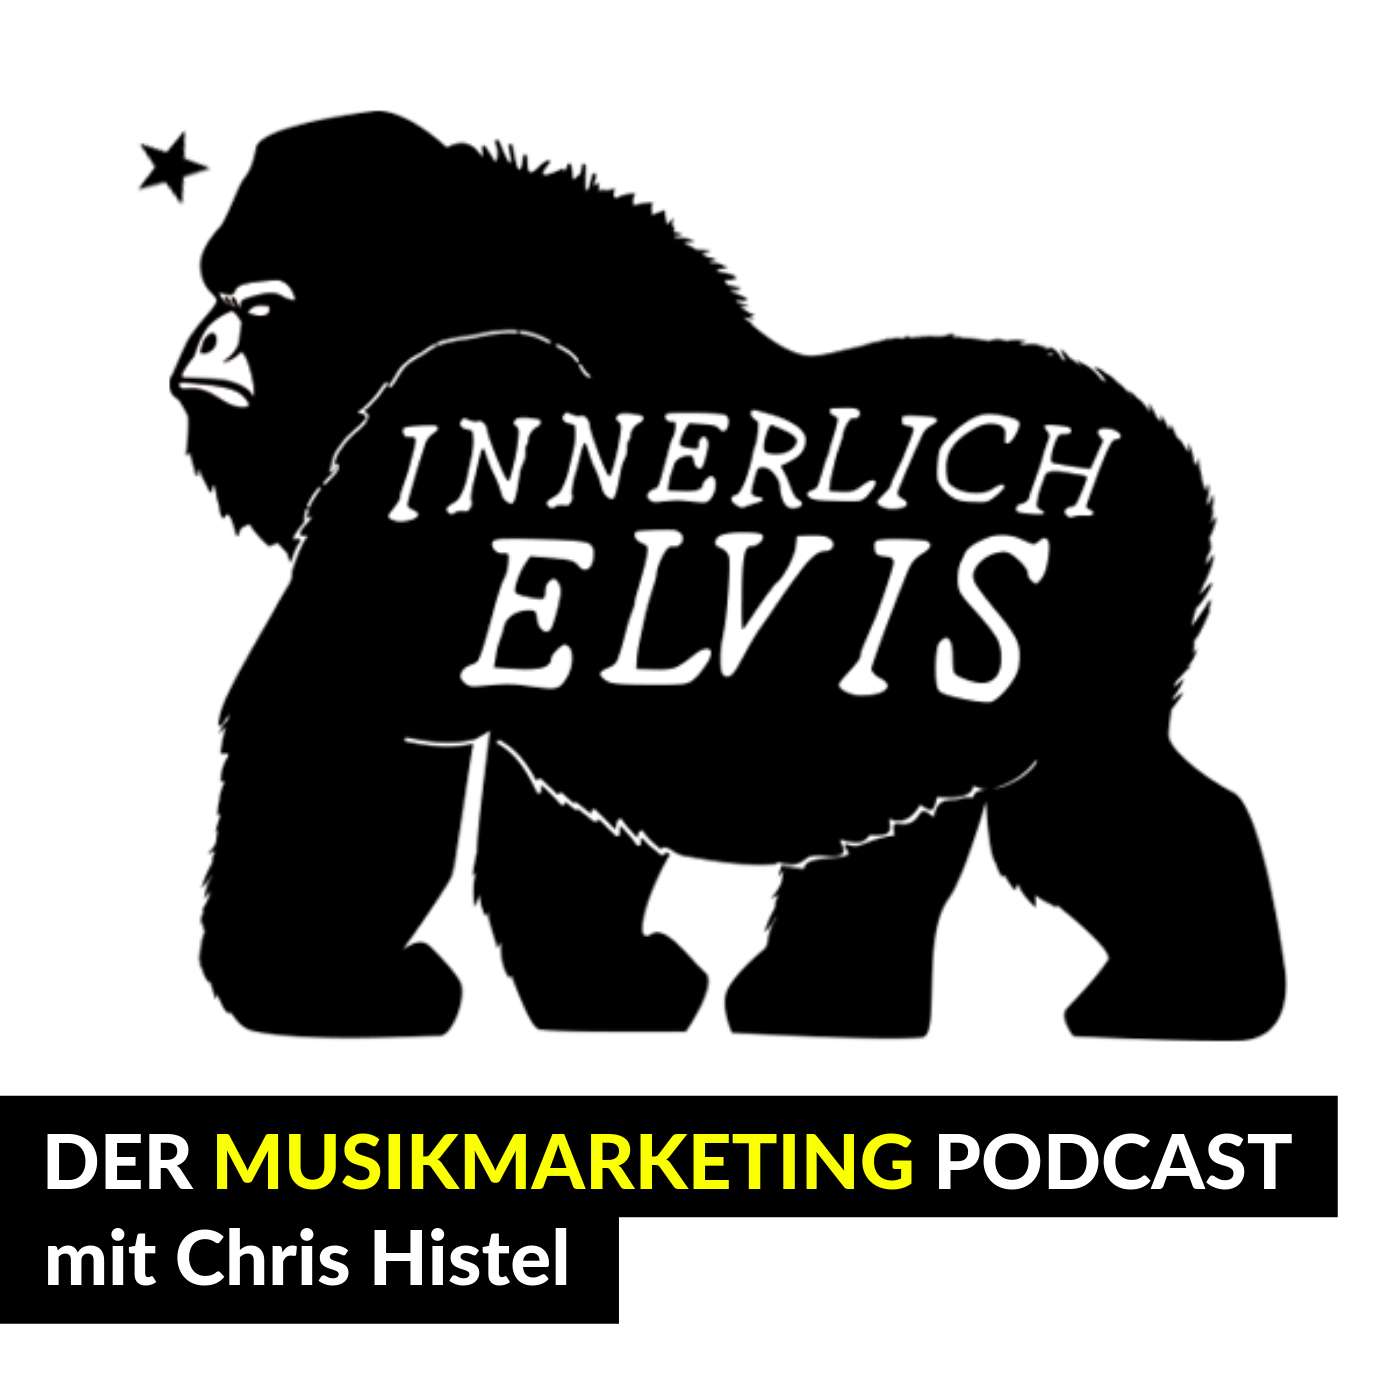 Innerlich Elvis - Der Musikmarketing Podcast